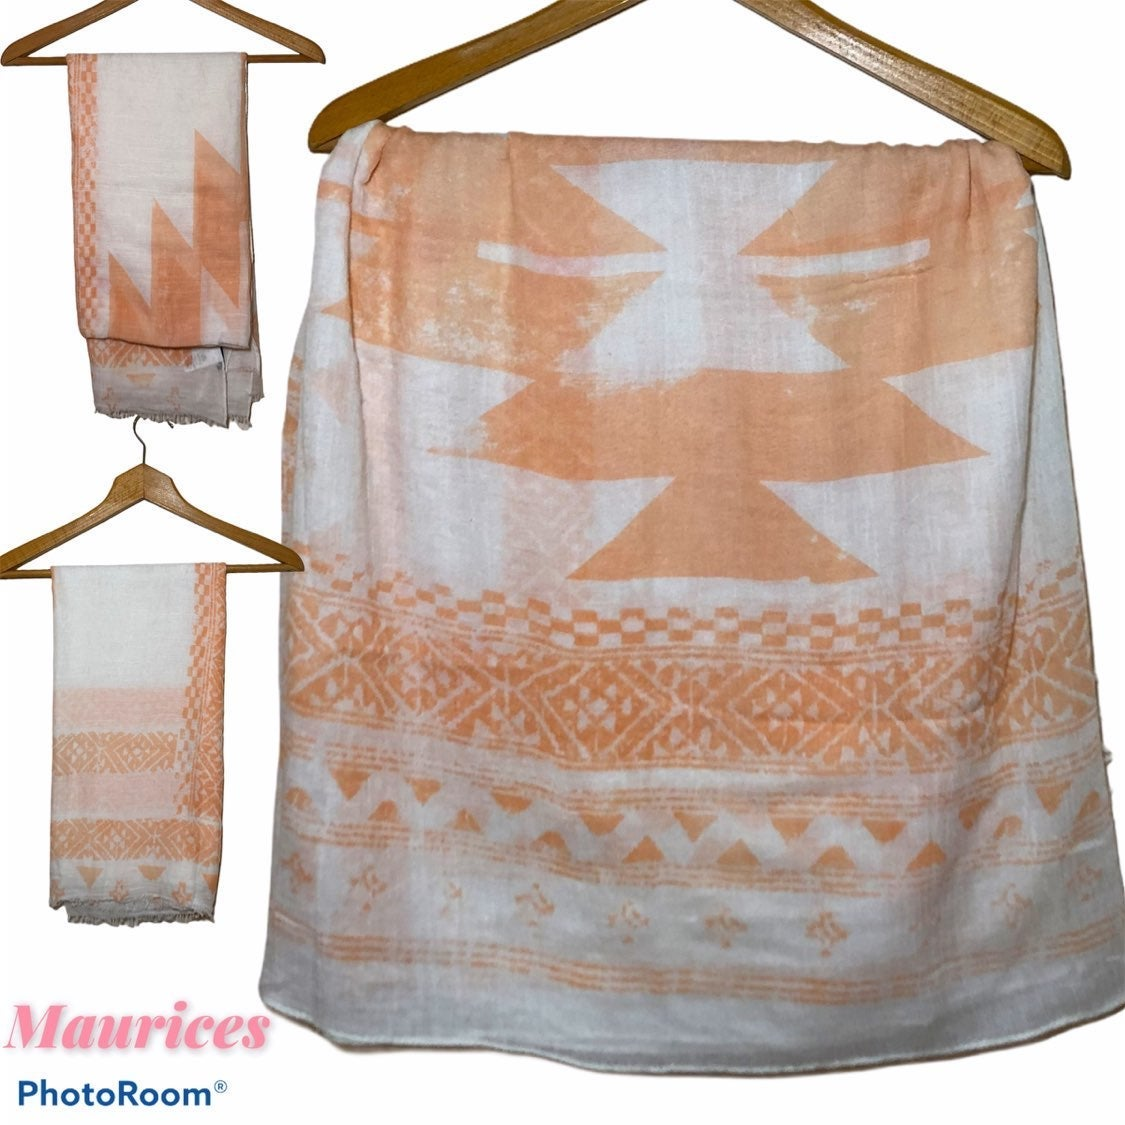 Maurices Accessory Scarf South Western